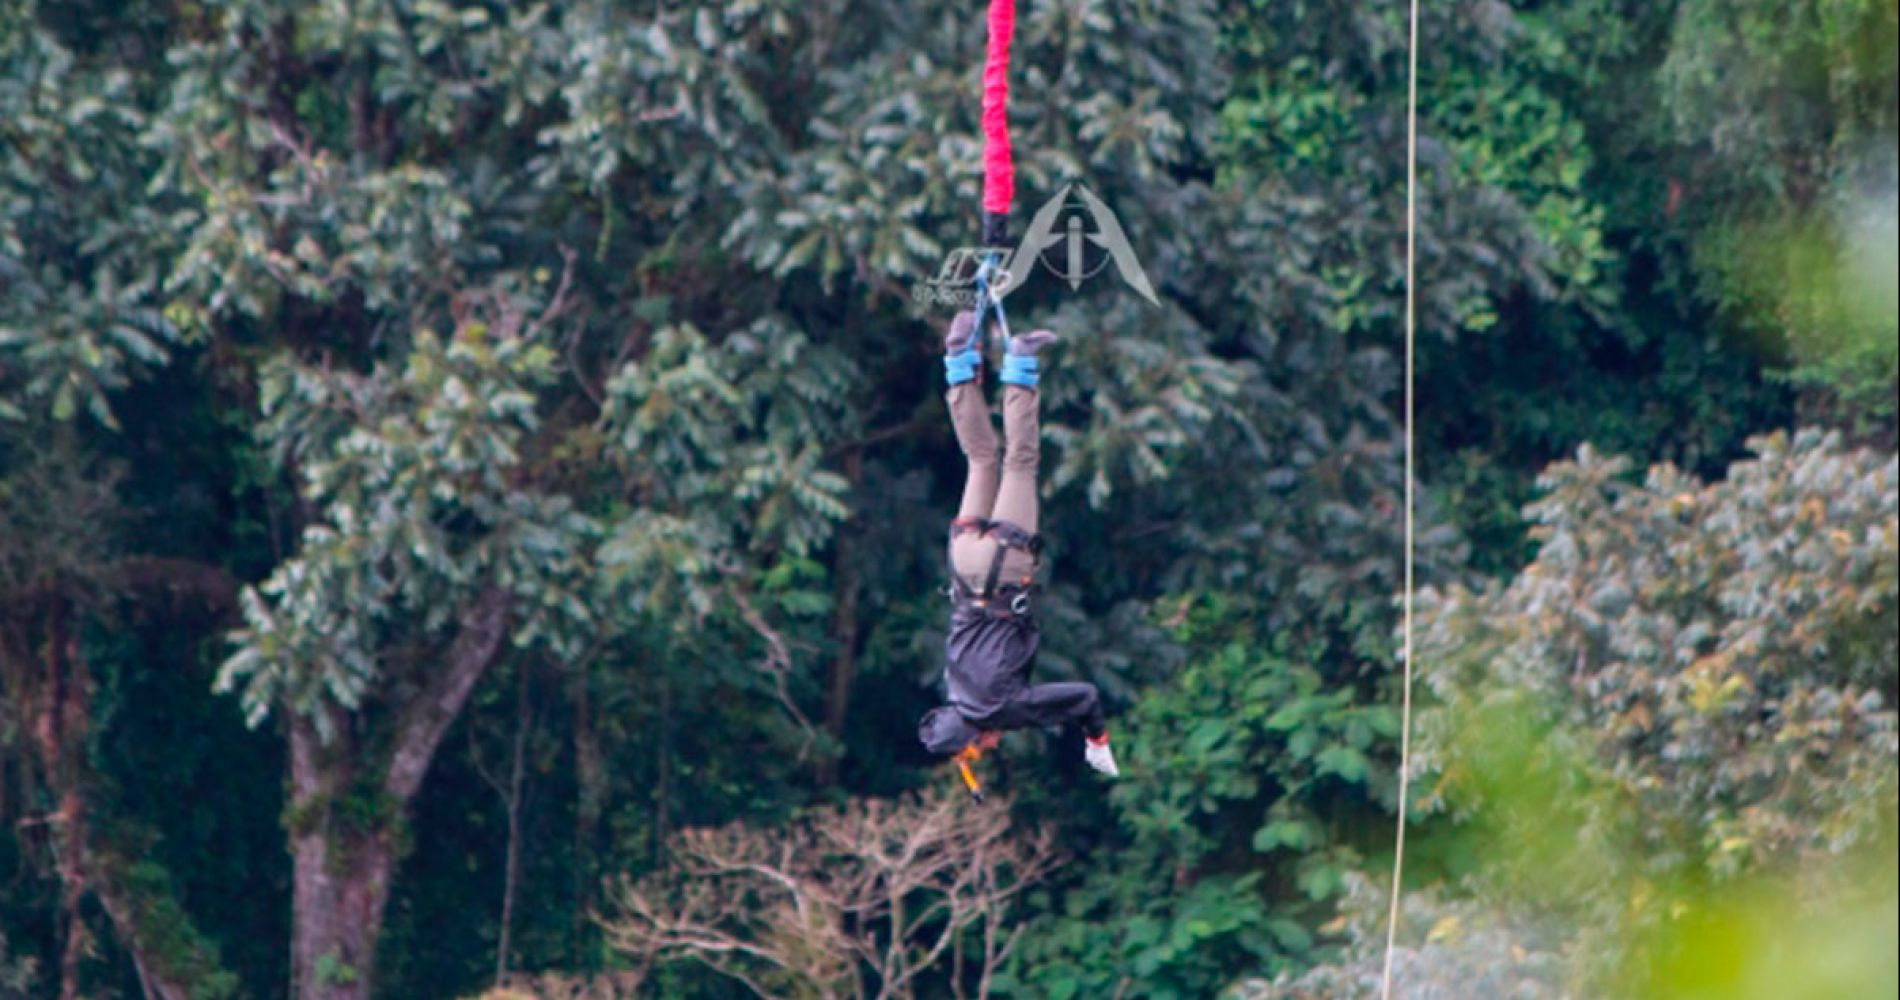 Bungee jump from a moving tram in Costa Rica